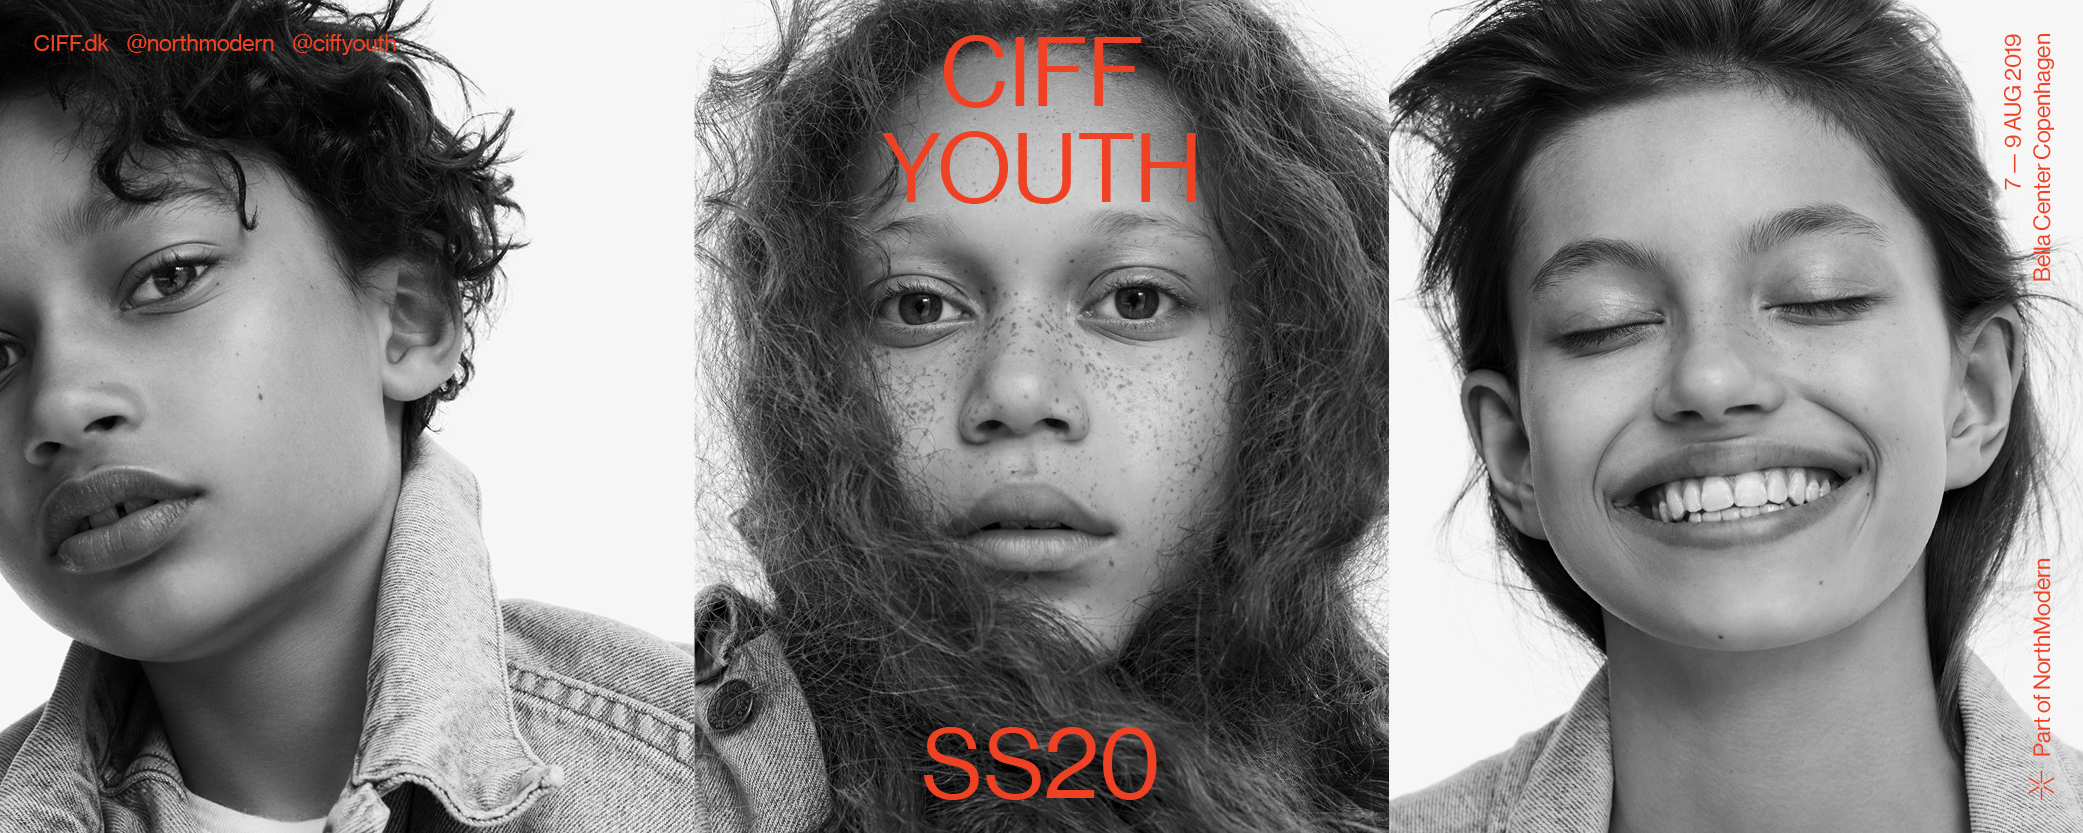 Ciff Youth im August 2019